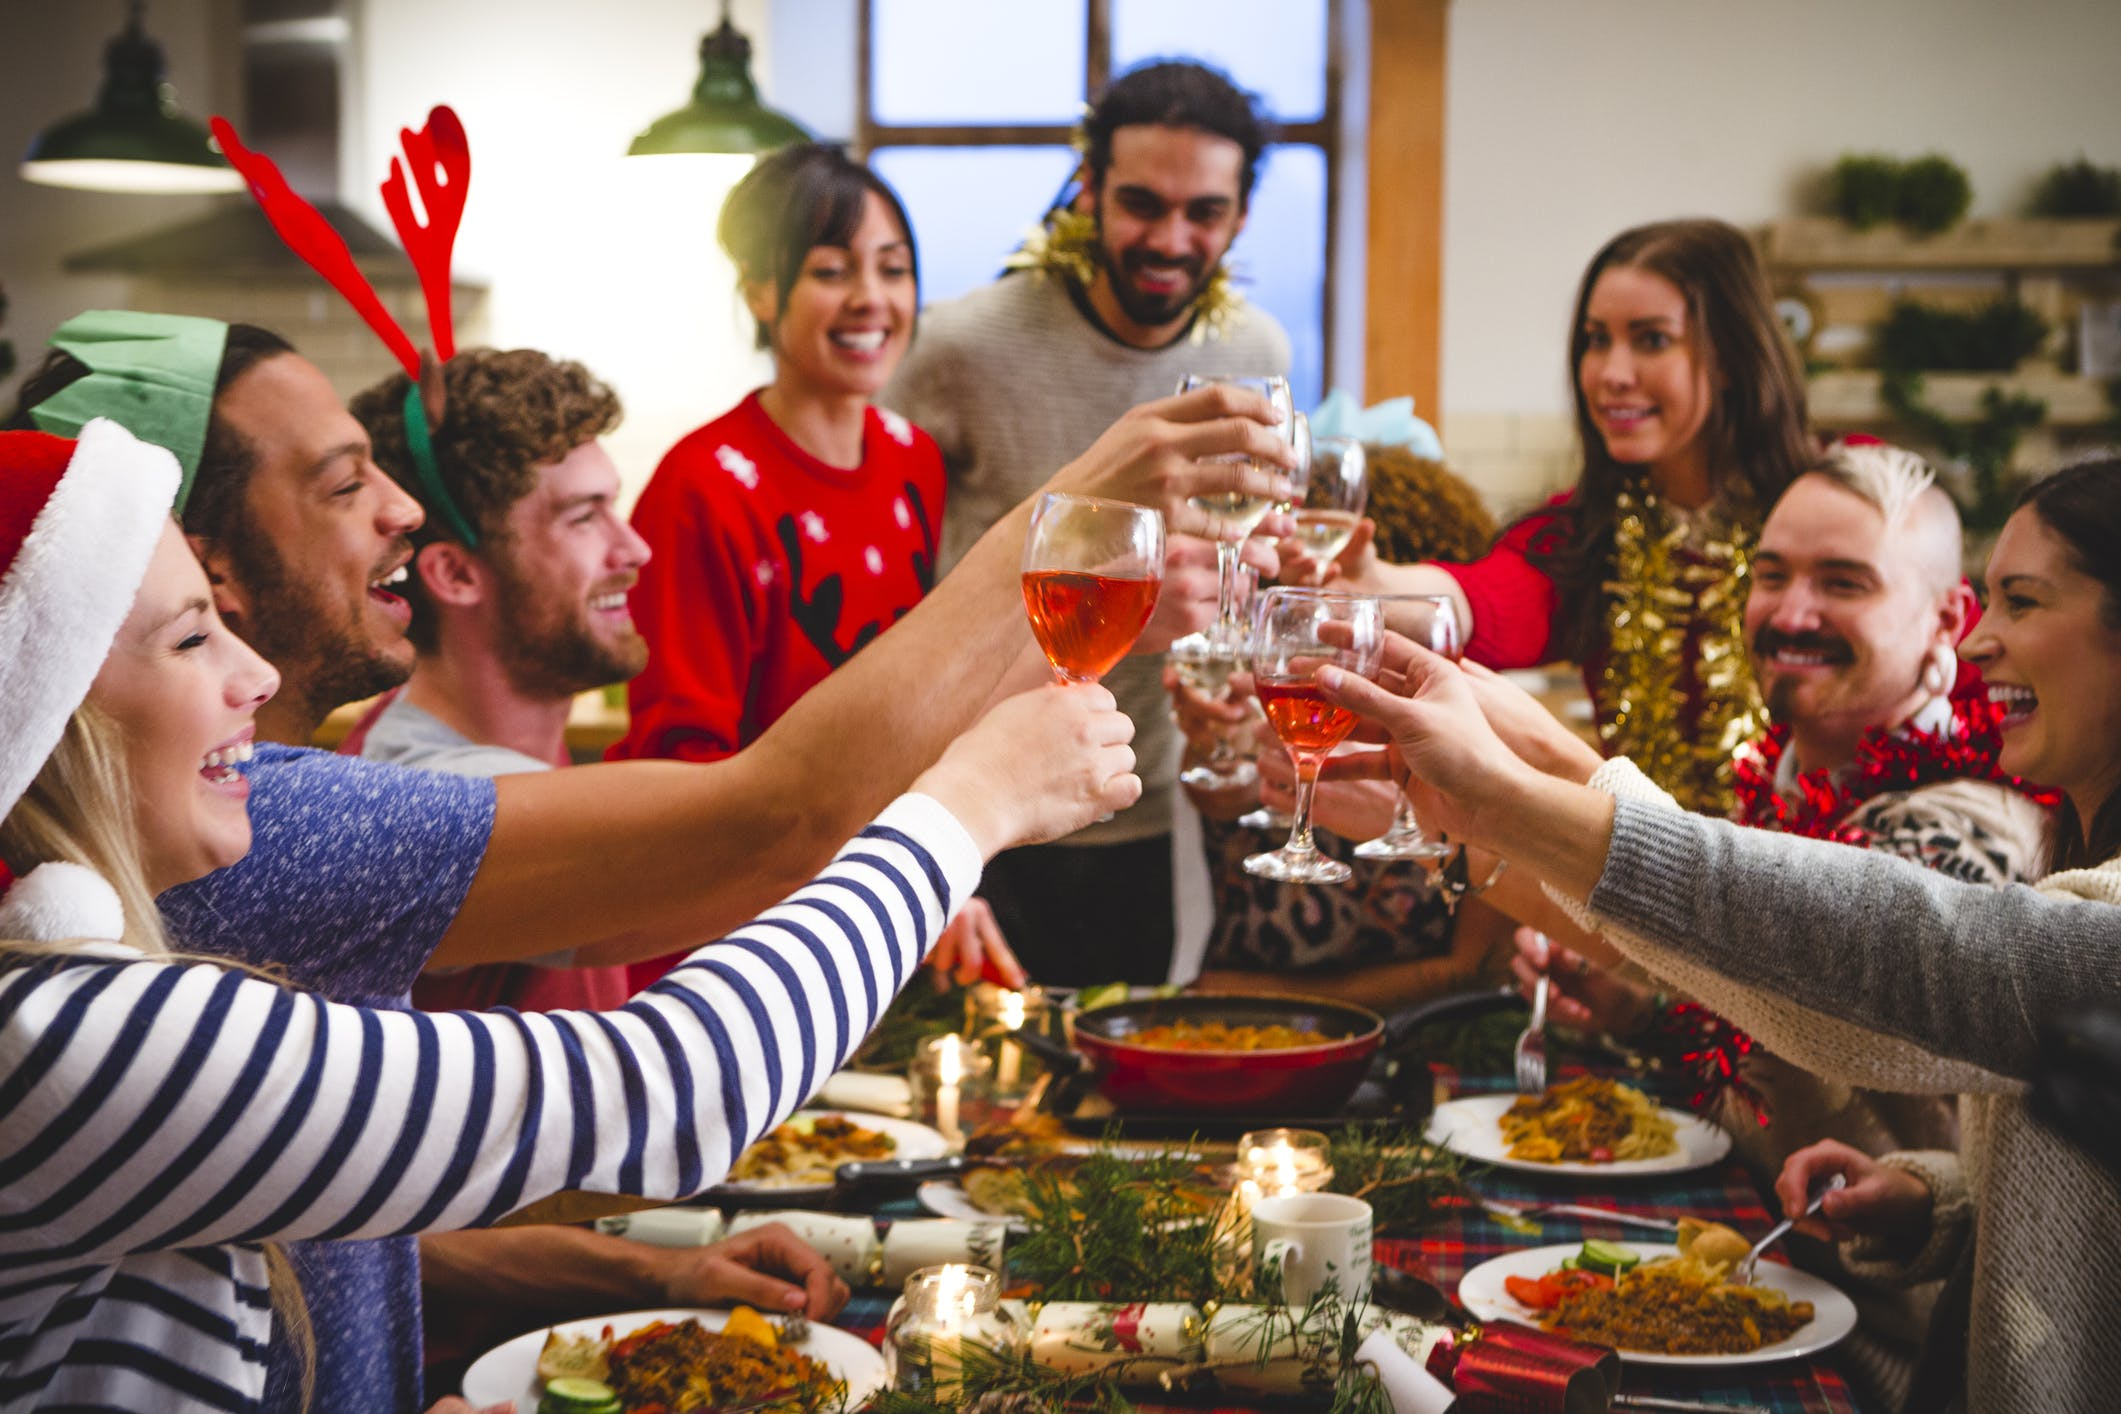 Serving Up Better Choices for Diabetics During the Holidays